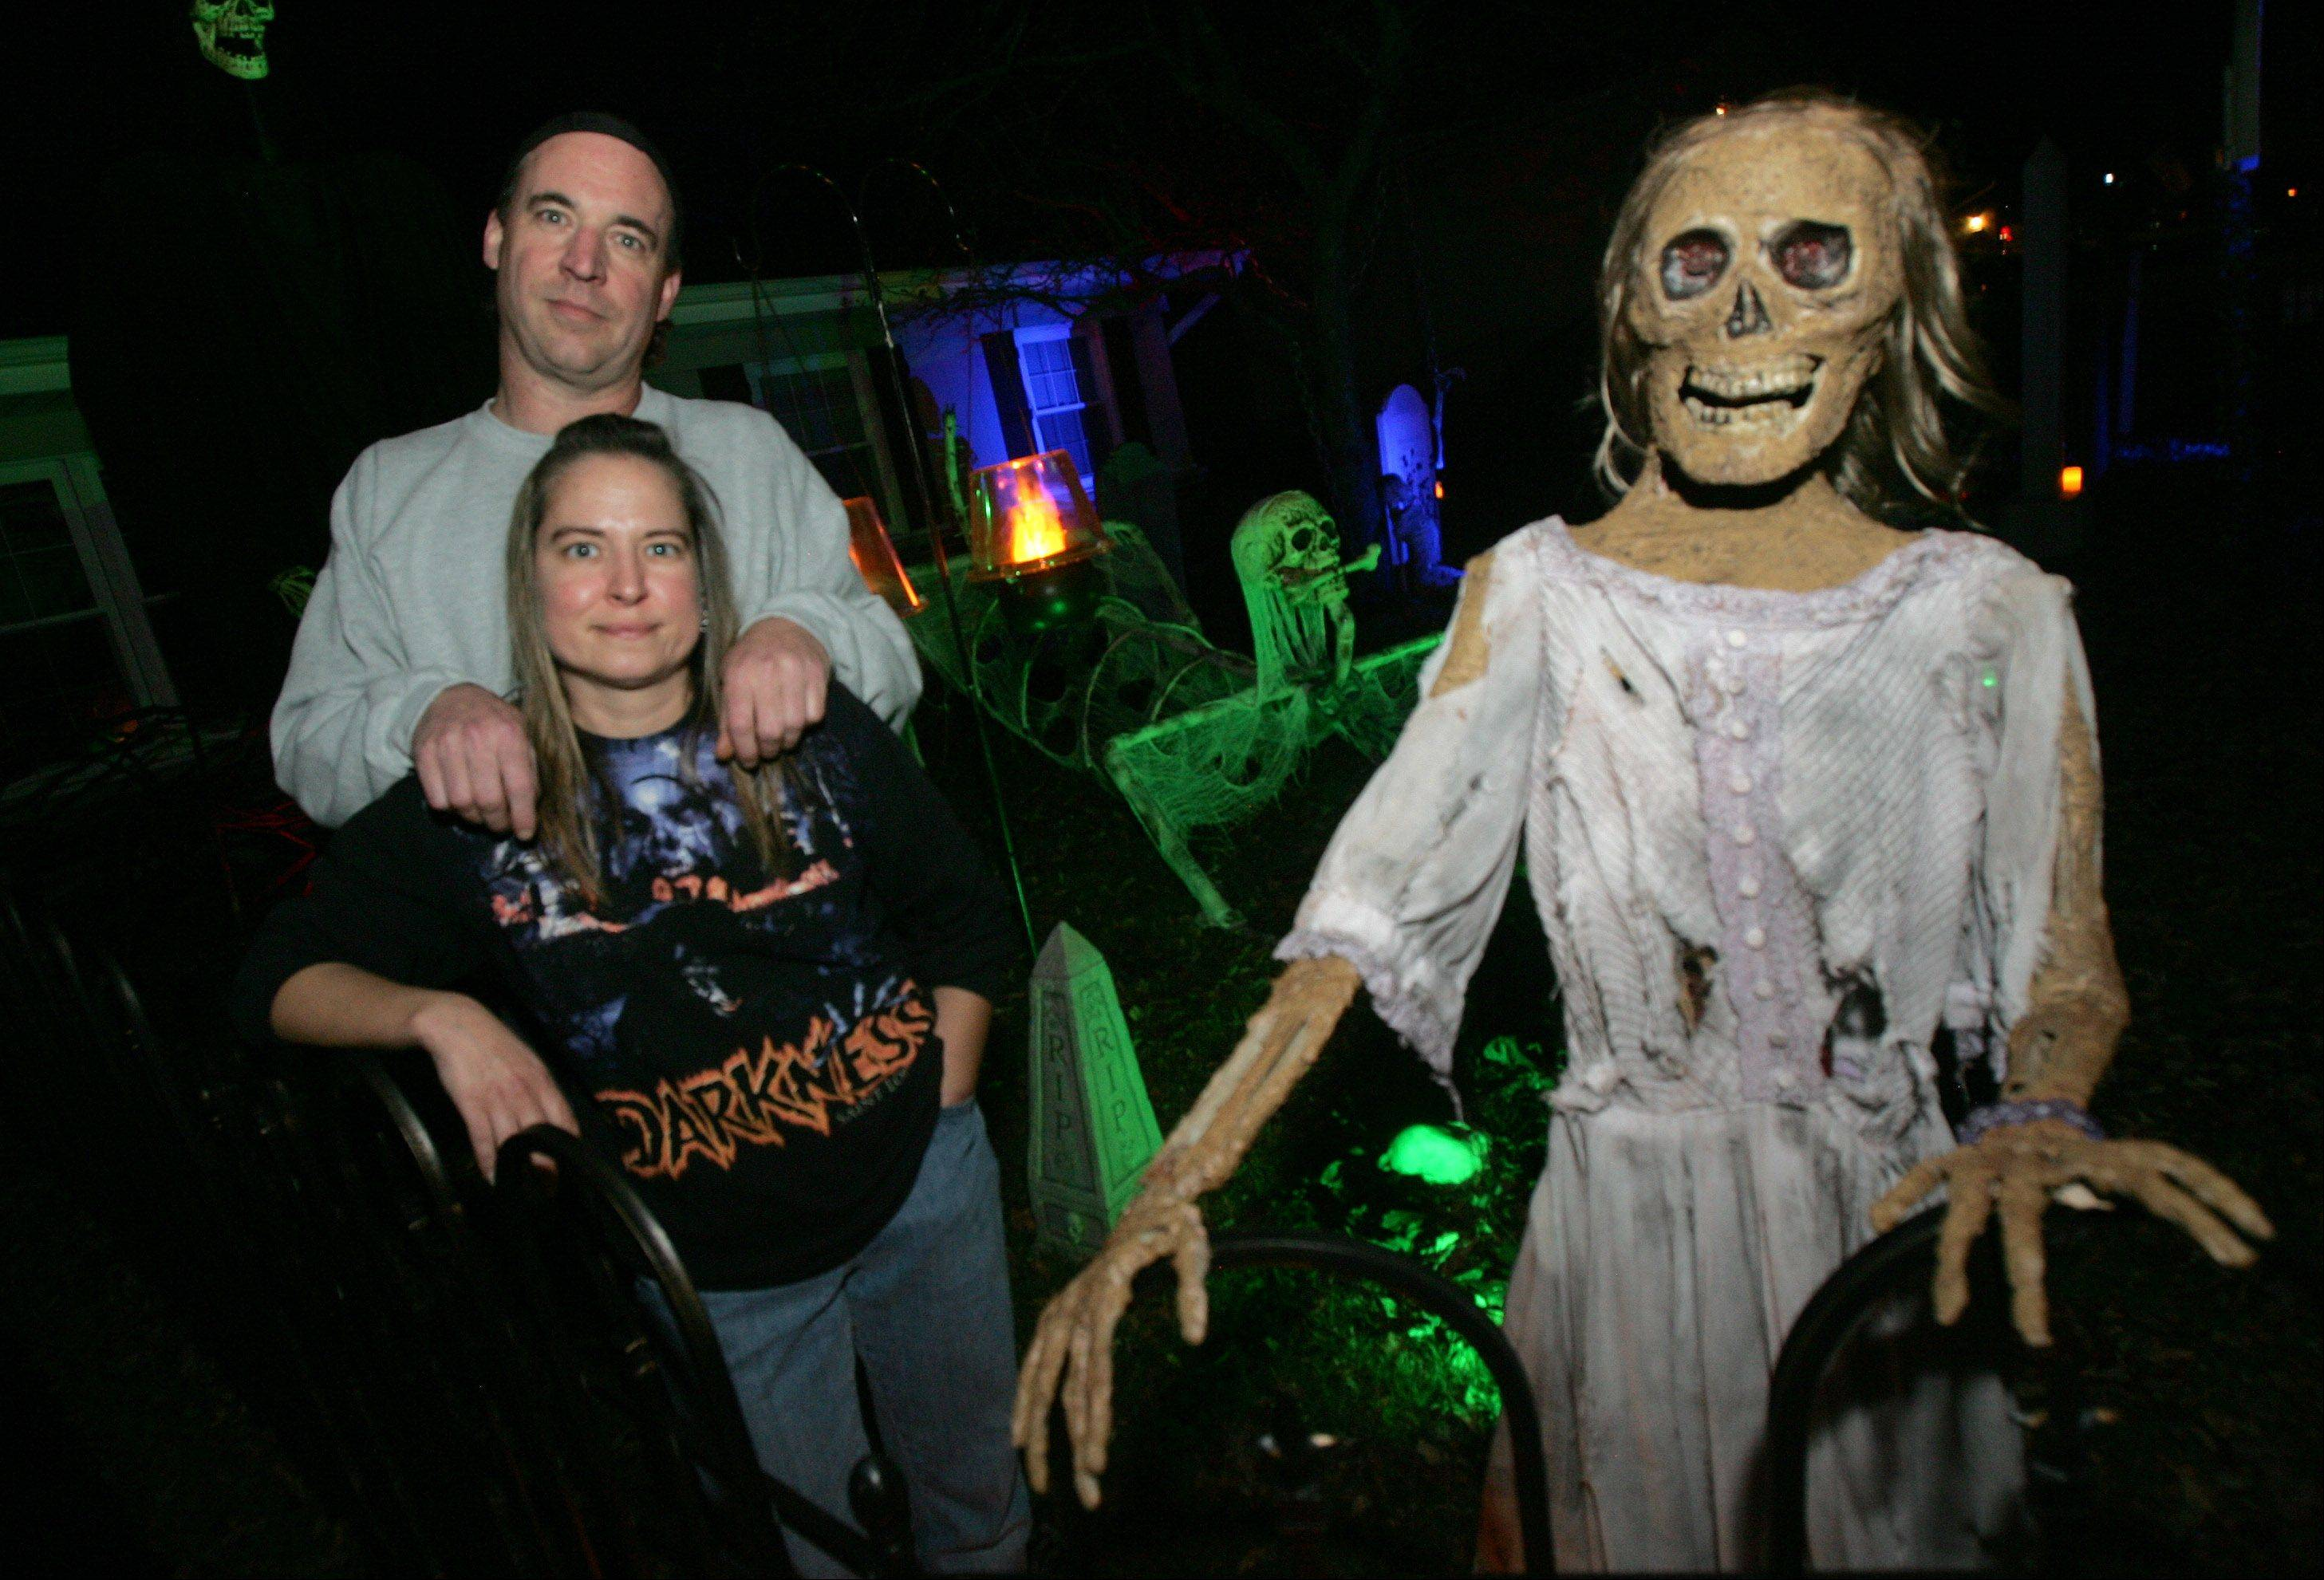 Lake Zurich residents Todd and Mickey Horndasch at their haunted home on Old Mill Grove Road. Visitors are asked to bring nonperishable donations for a weekly church food pantry and a local pet rescue.